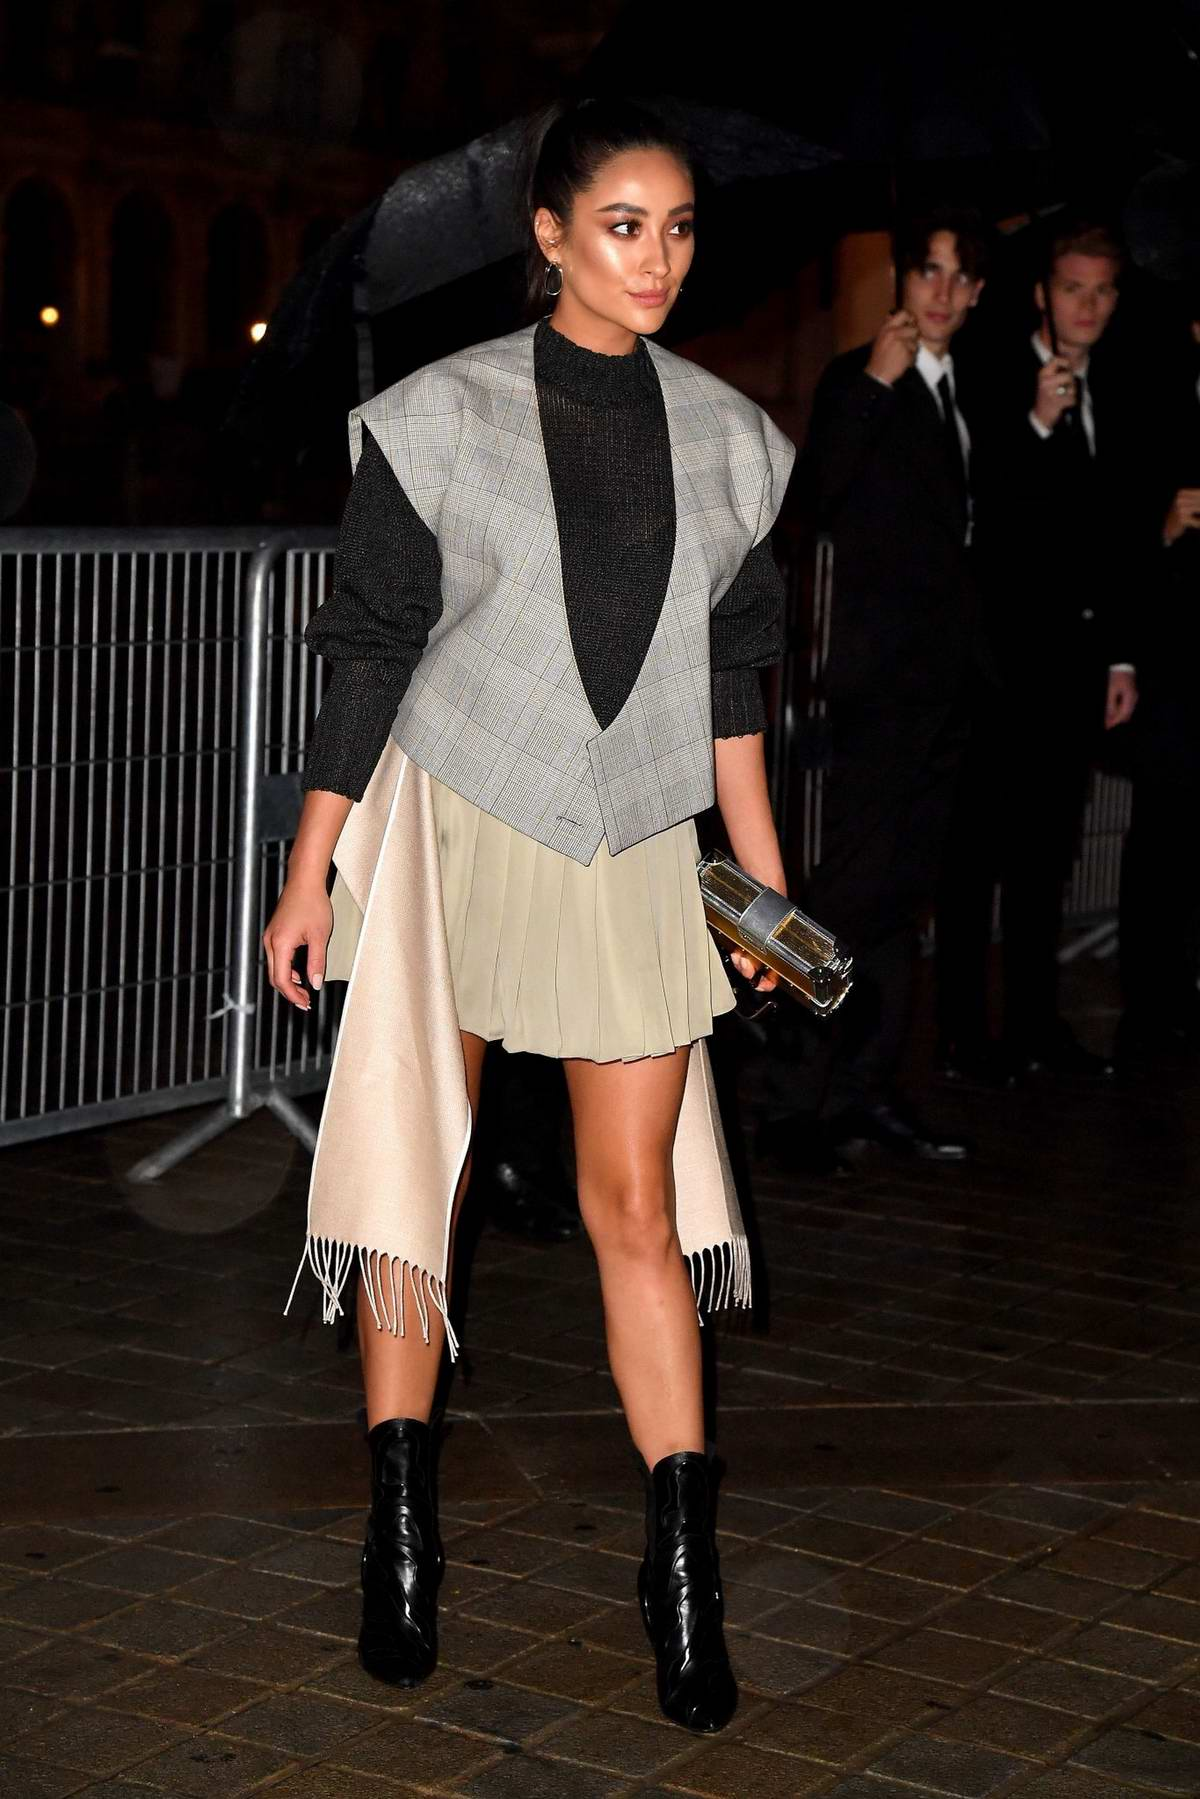 Shay Mitchell attending the Louis Vuitton show during Paris Fashion Week in Paris, France